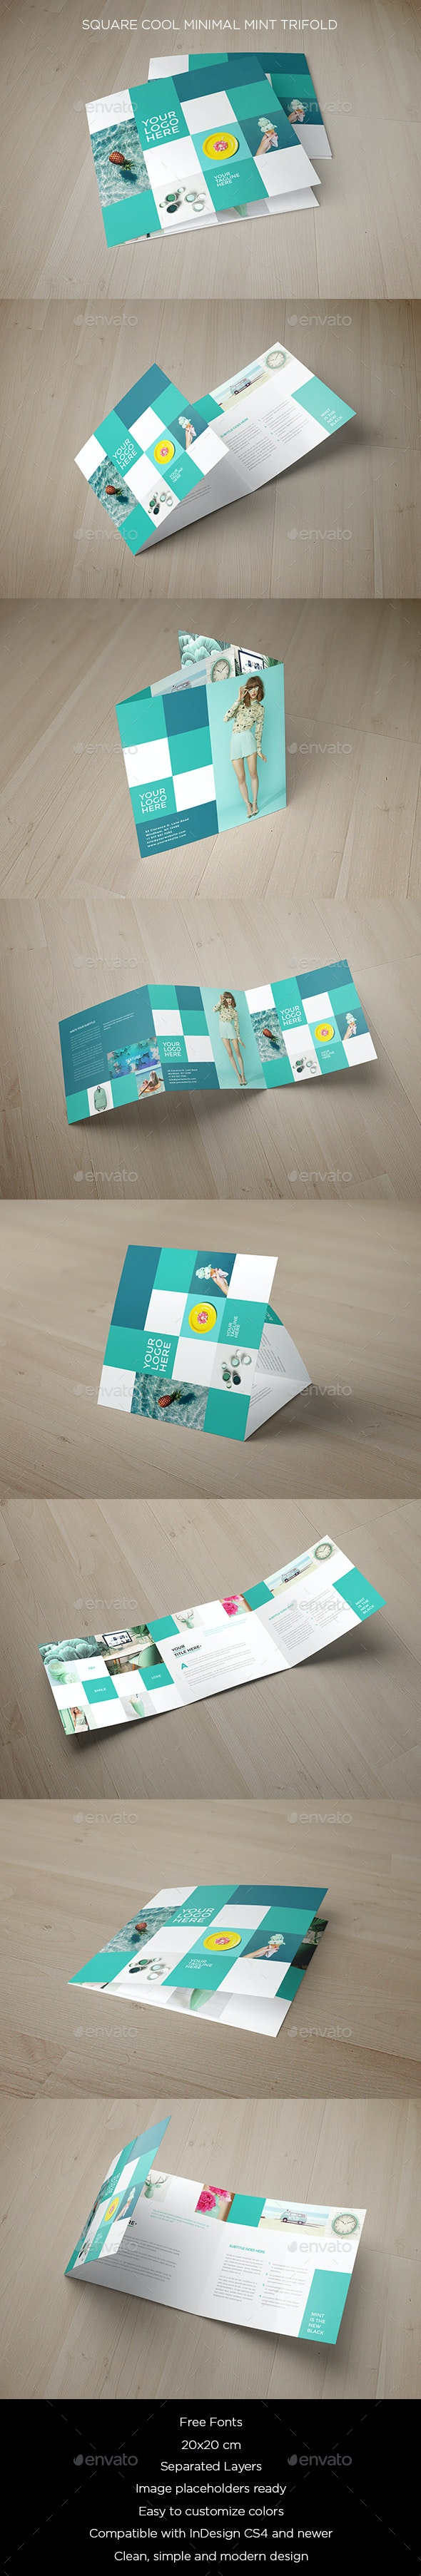 Square Cool Minimal Mint Trifold - Brochures Print Templates